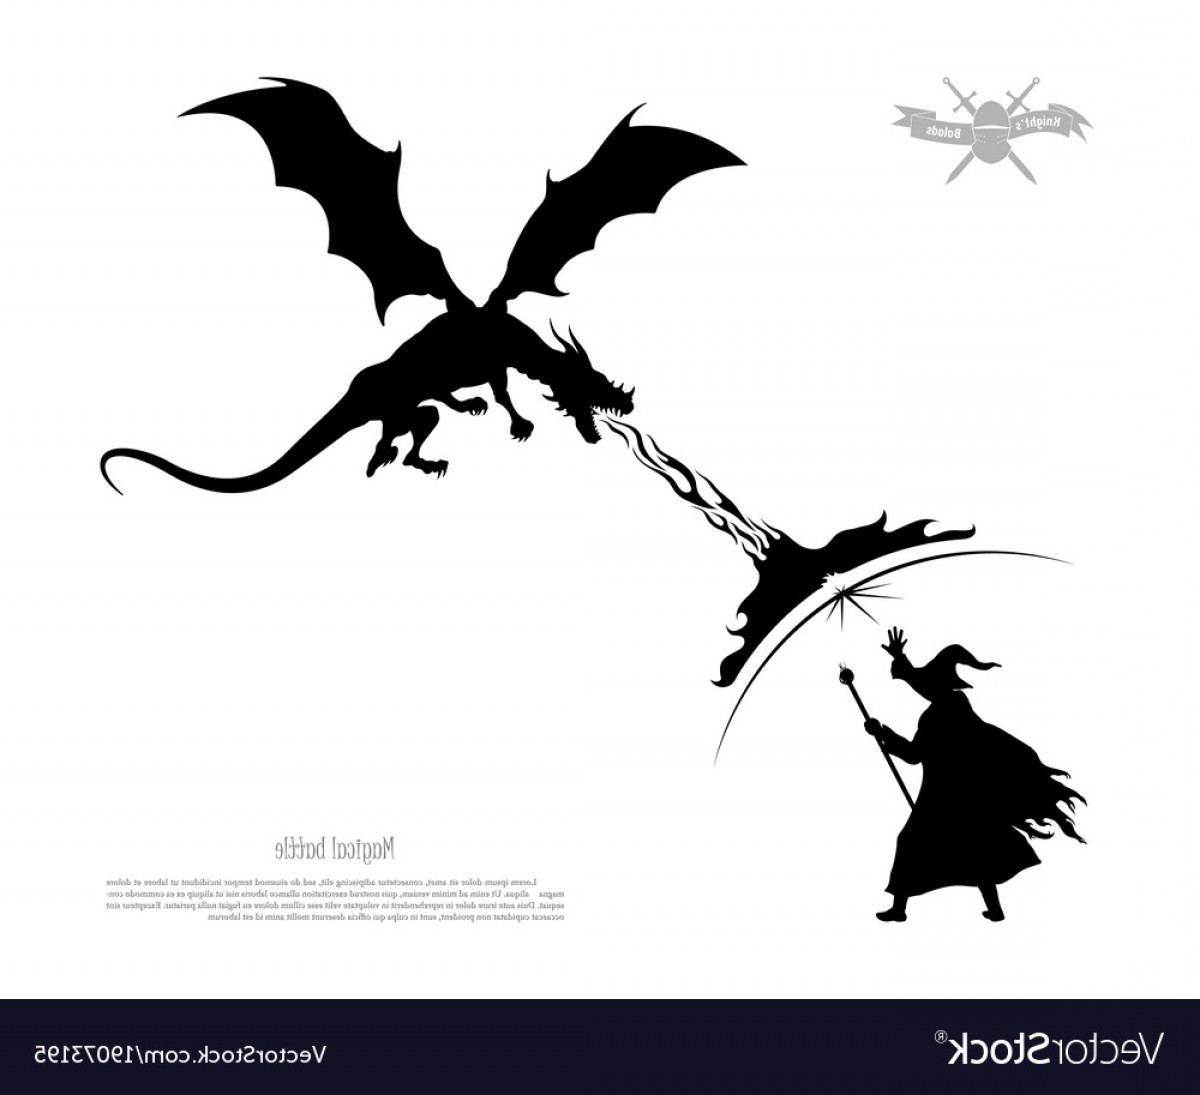 Wizard Silhouette Vector: Black Silhouette Of Battle Of Wizard With Dragon Vector